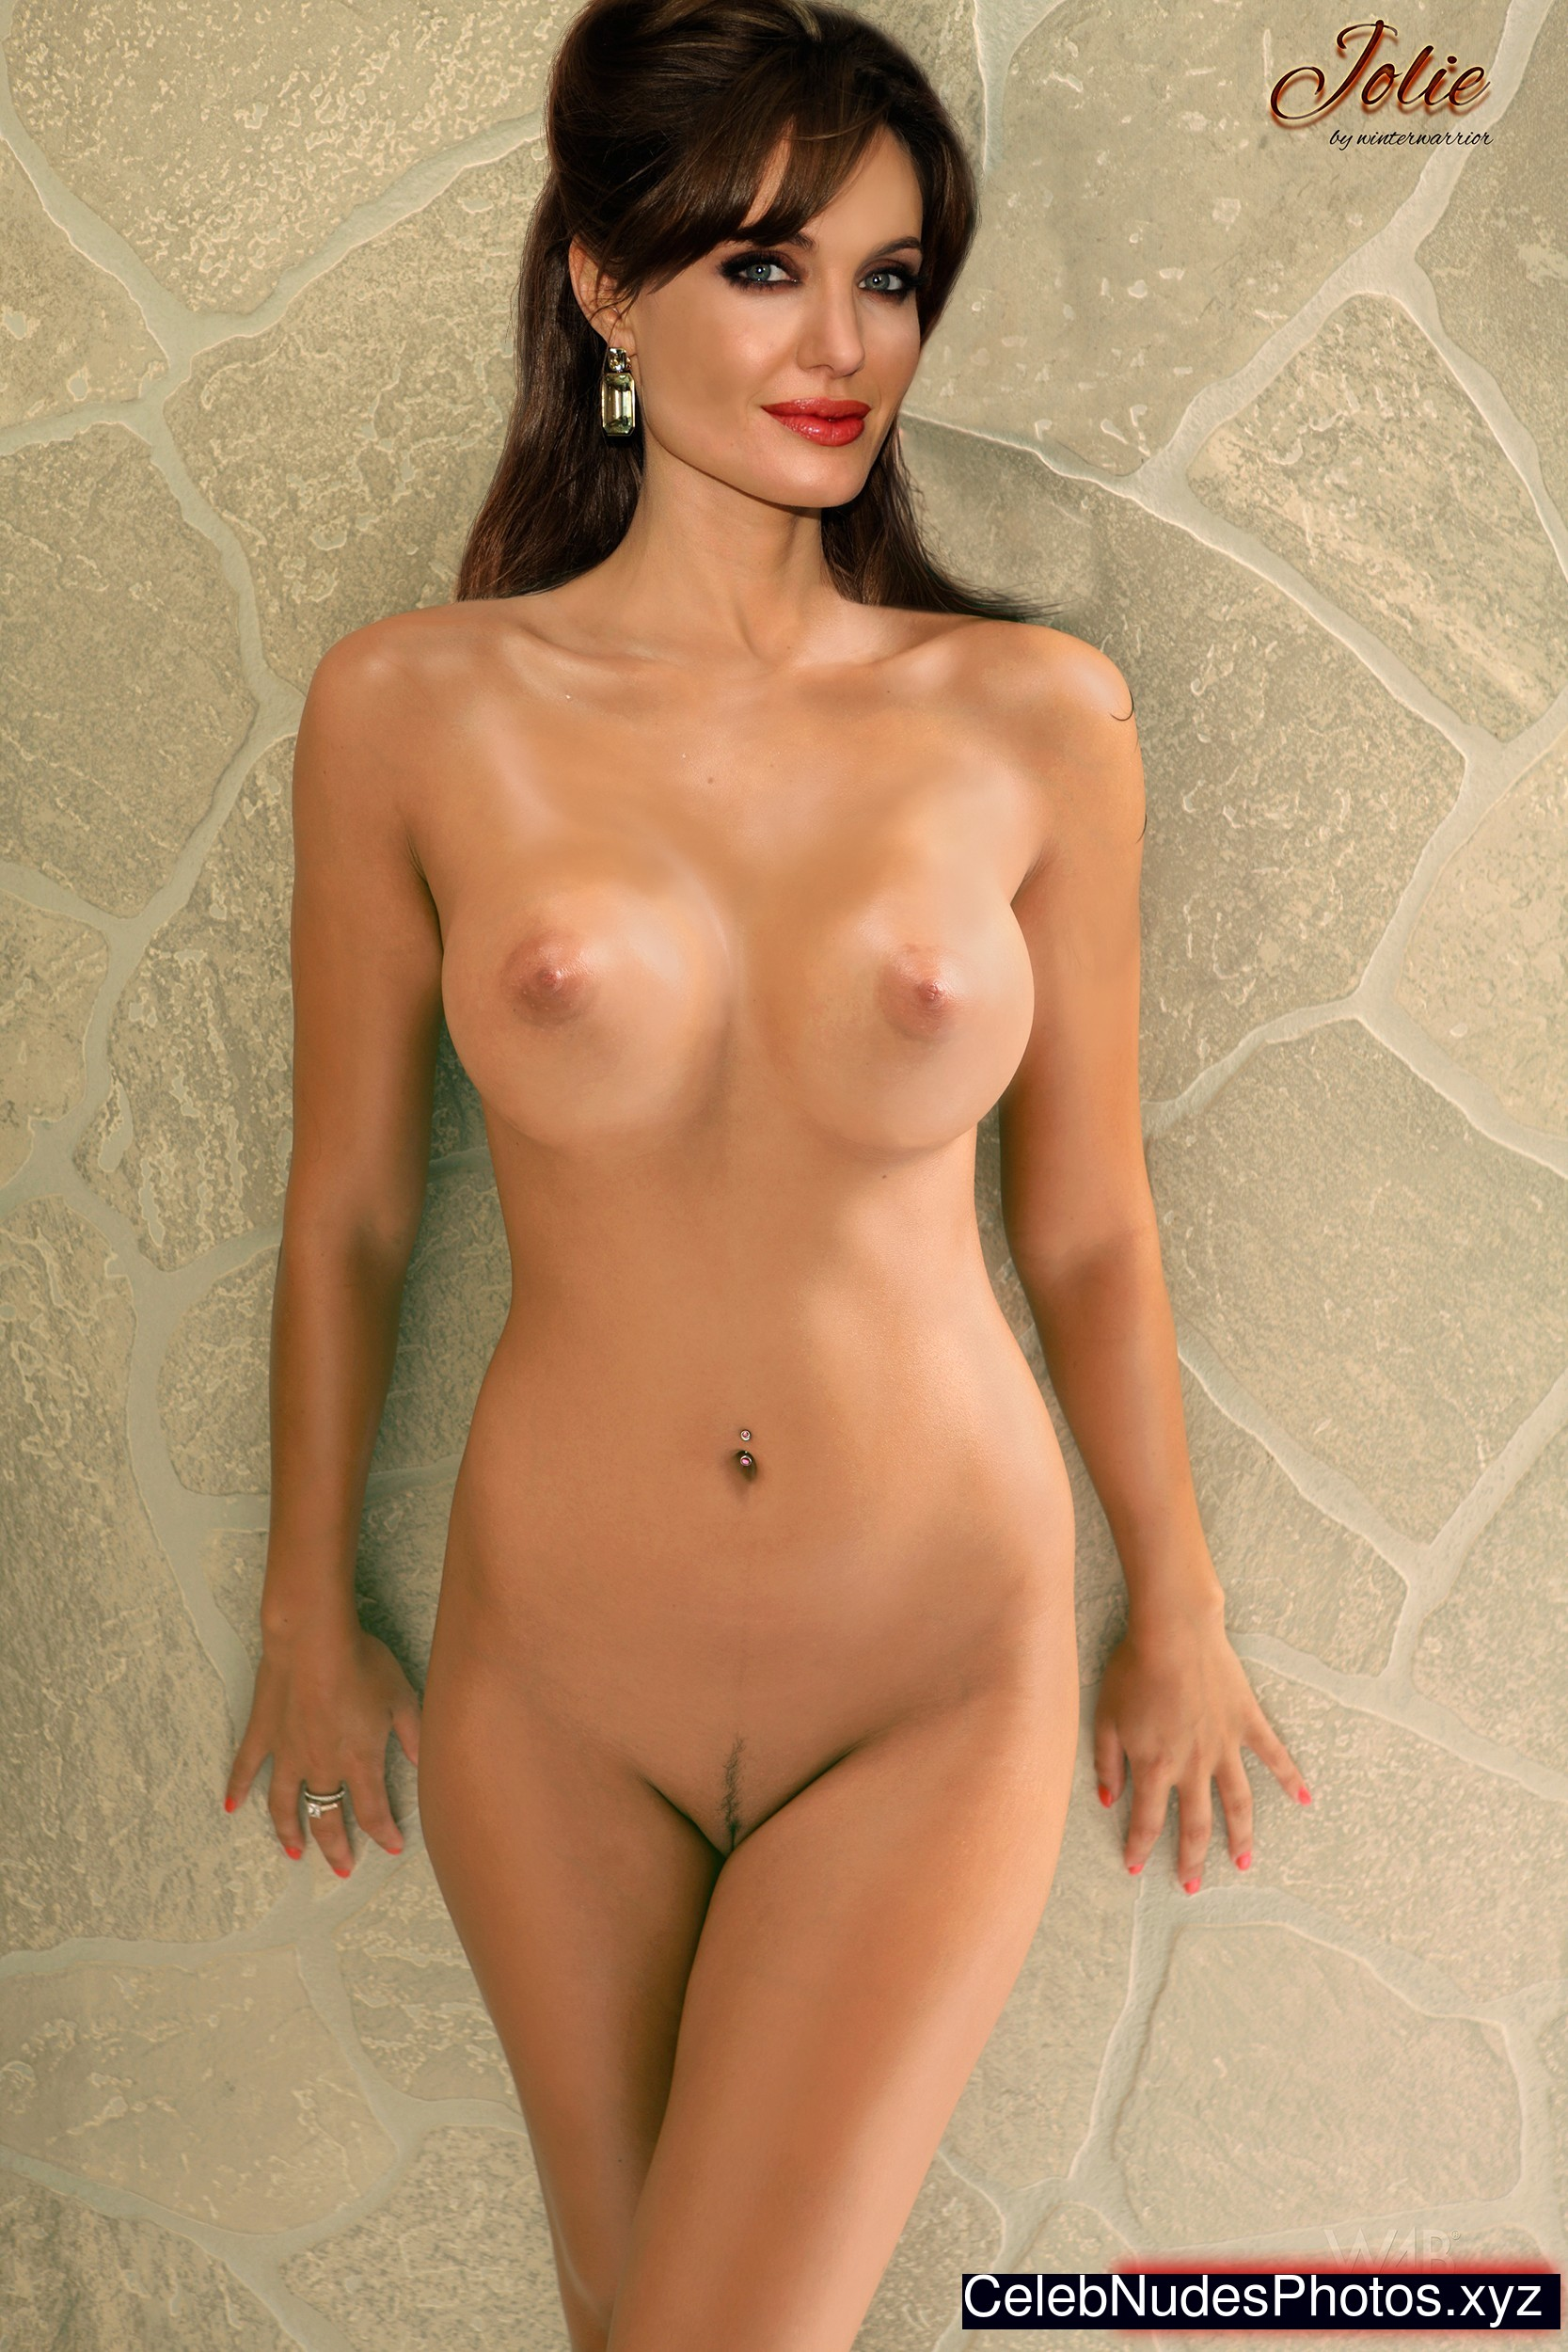 Jolie hollywood nude angelina